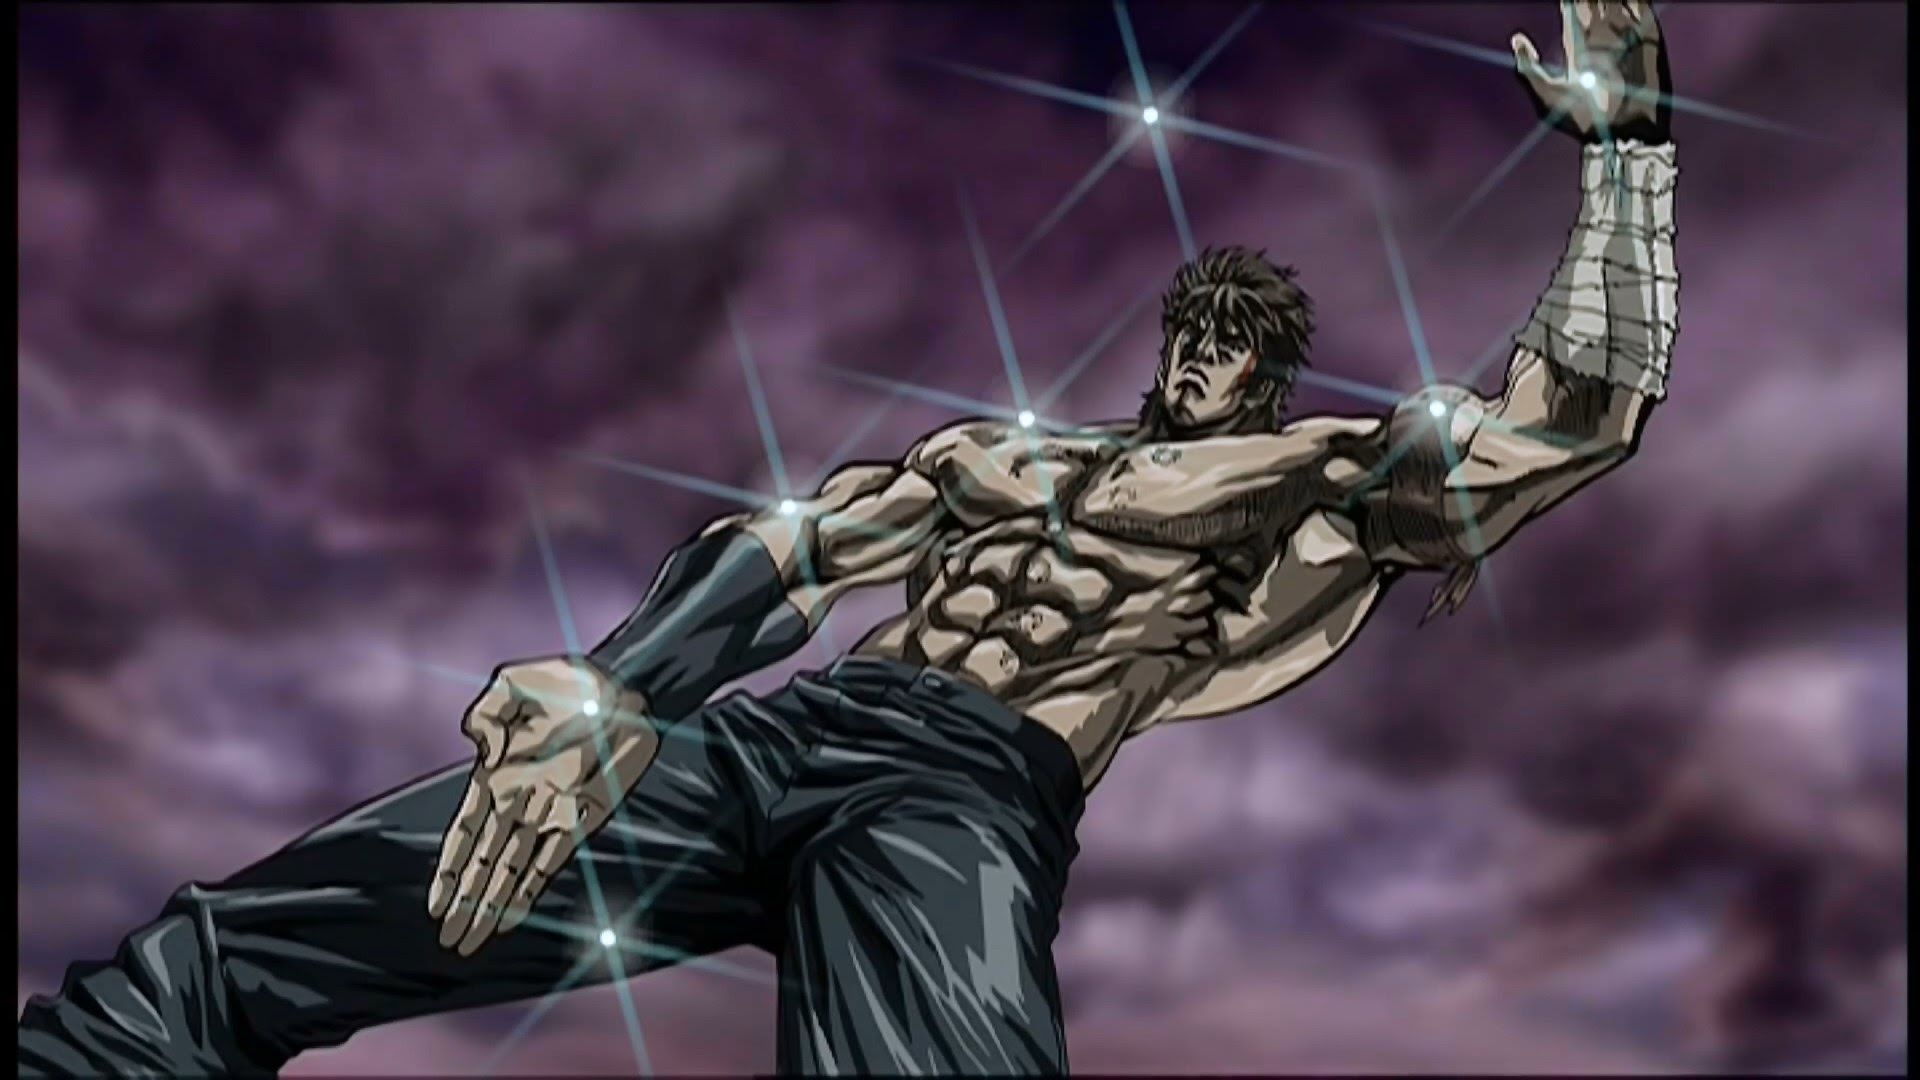 Kenshiro North Star Jojo Bizzare Adventure Super Human